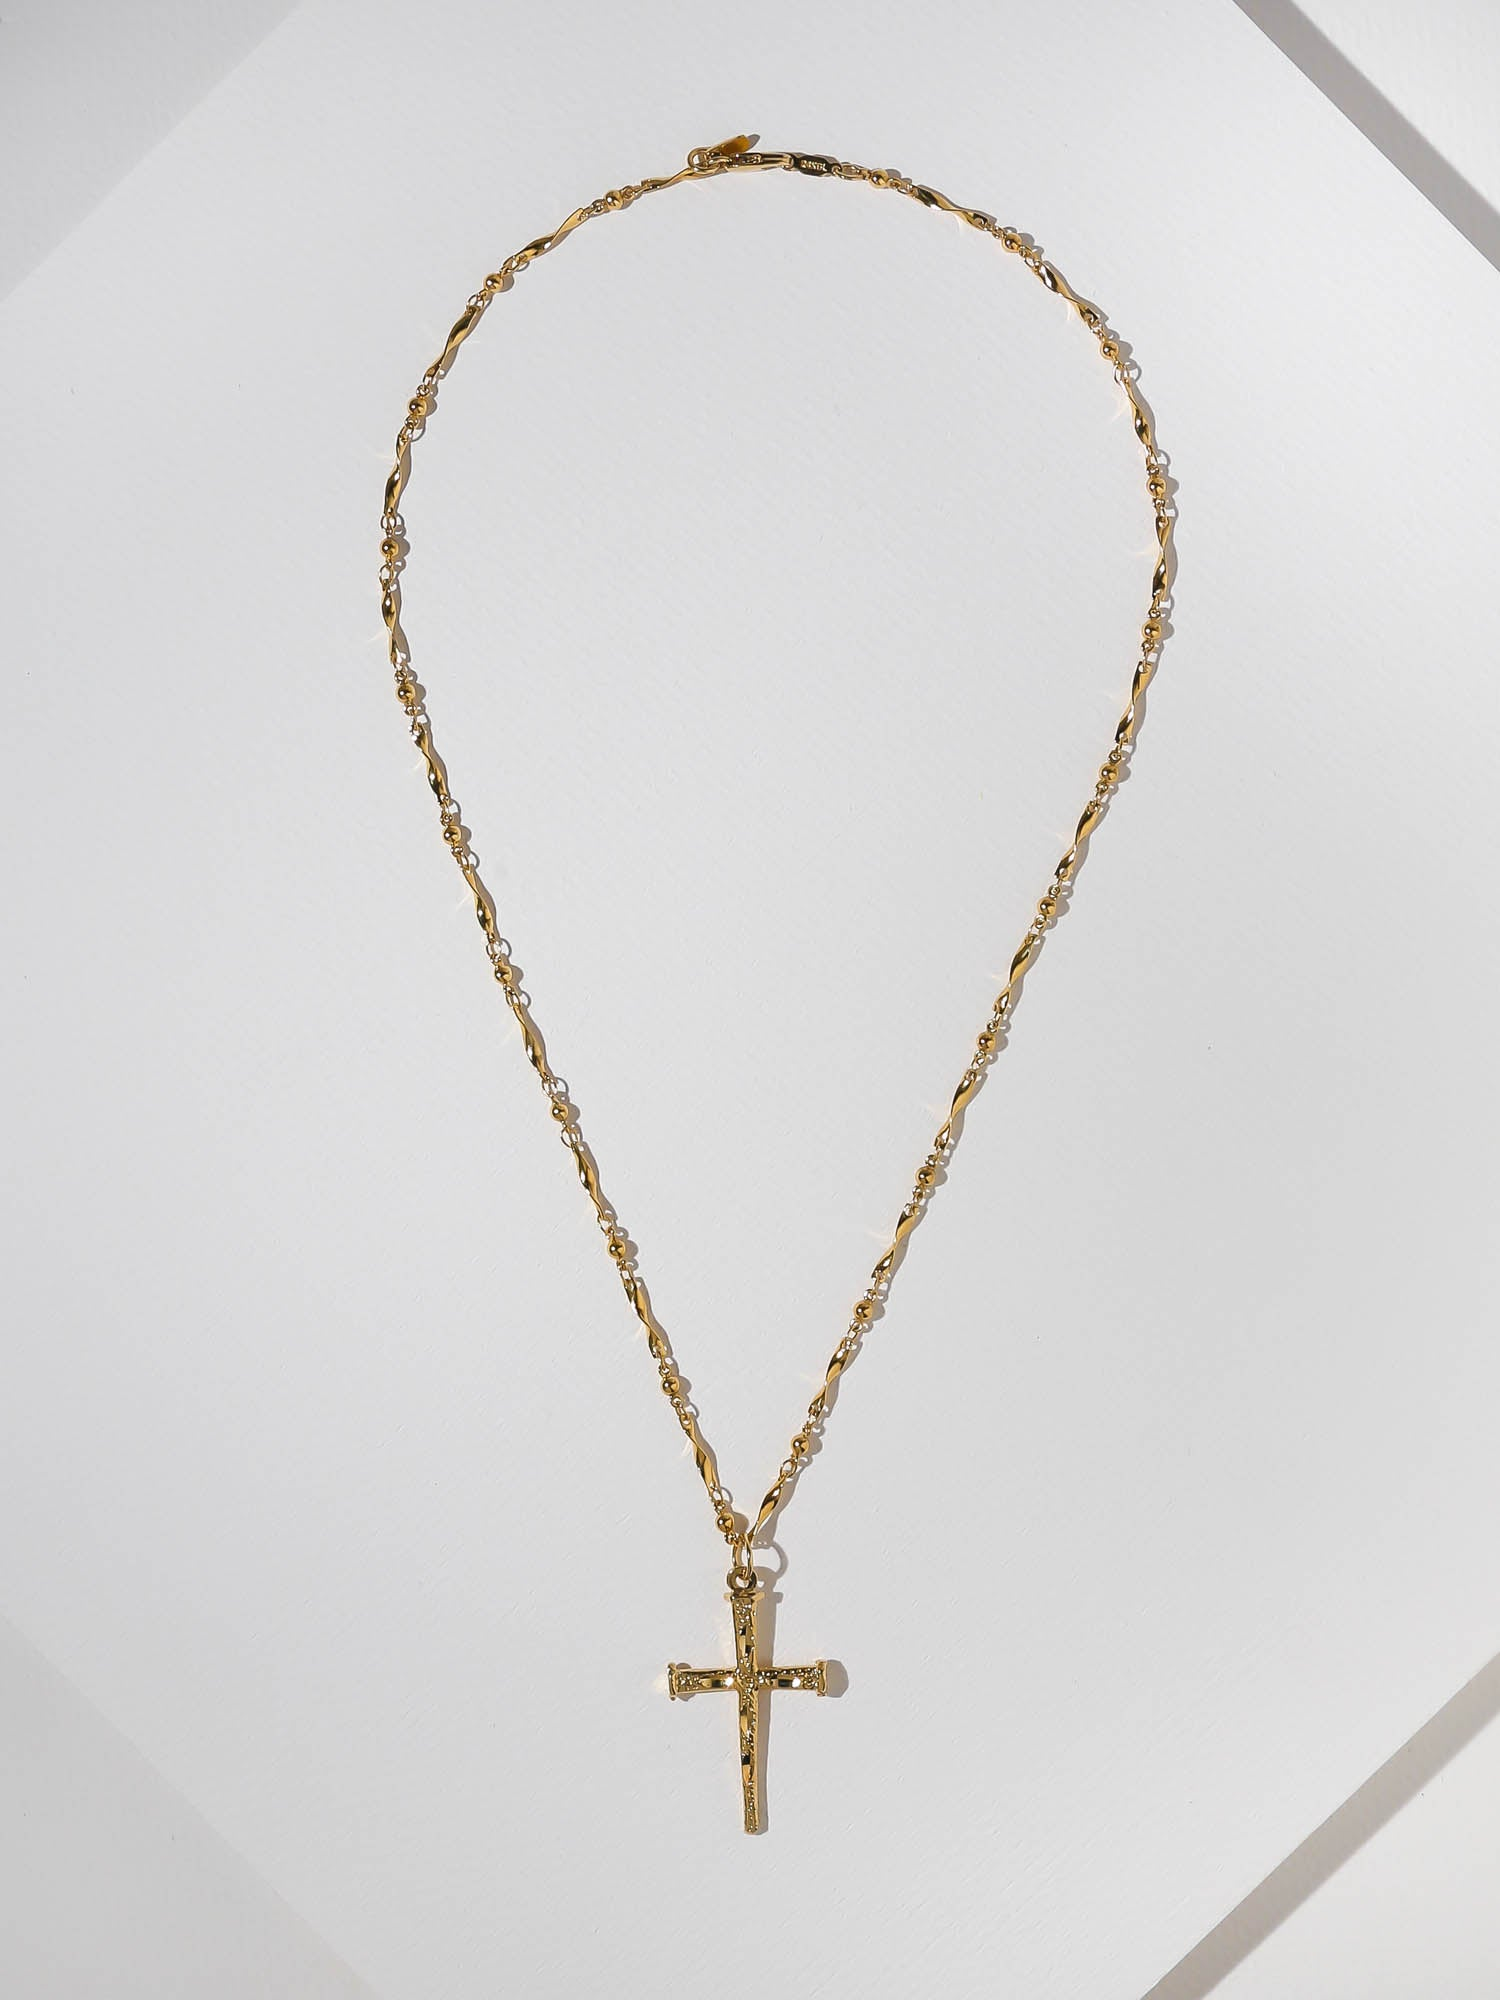 The Aria Cross Necklace